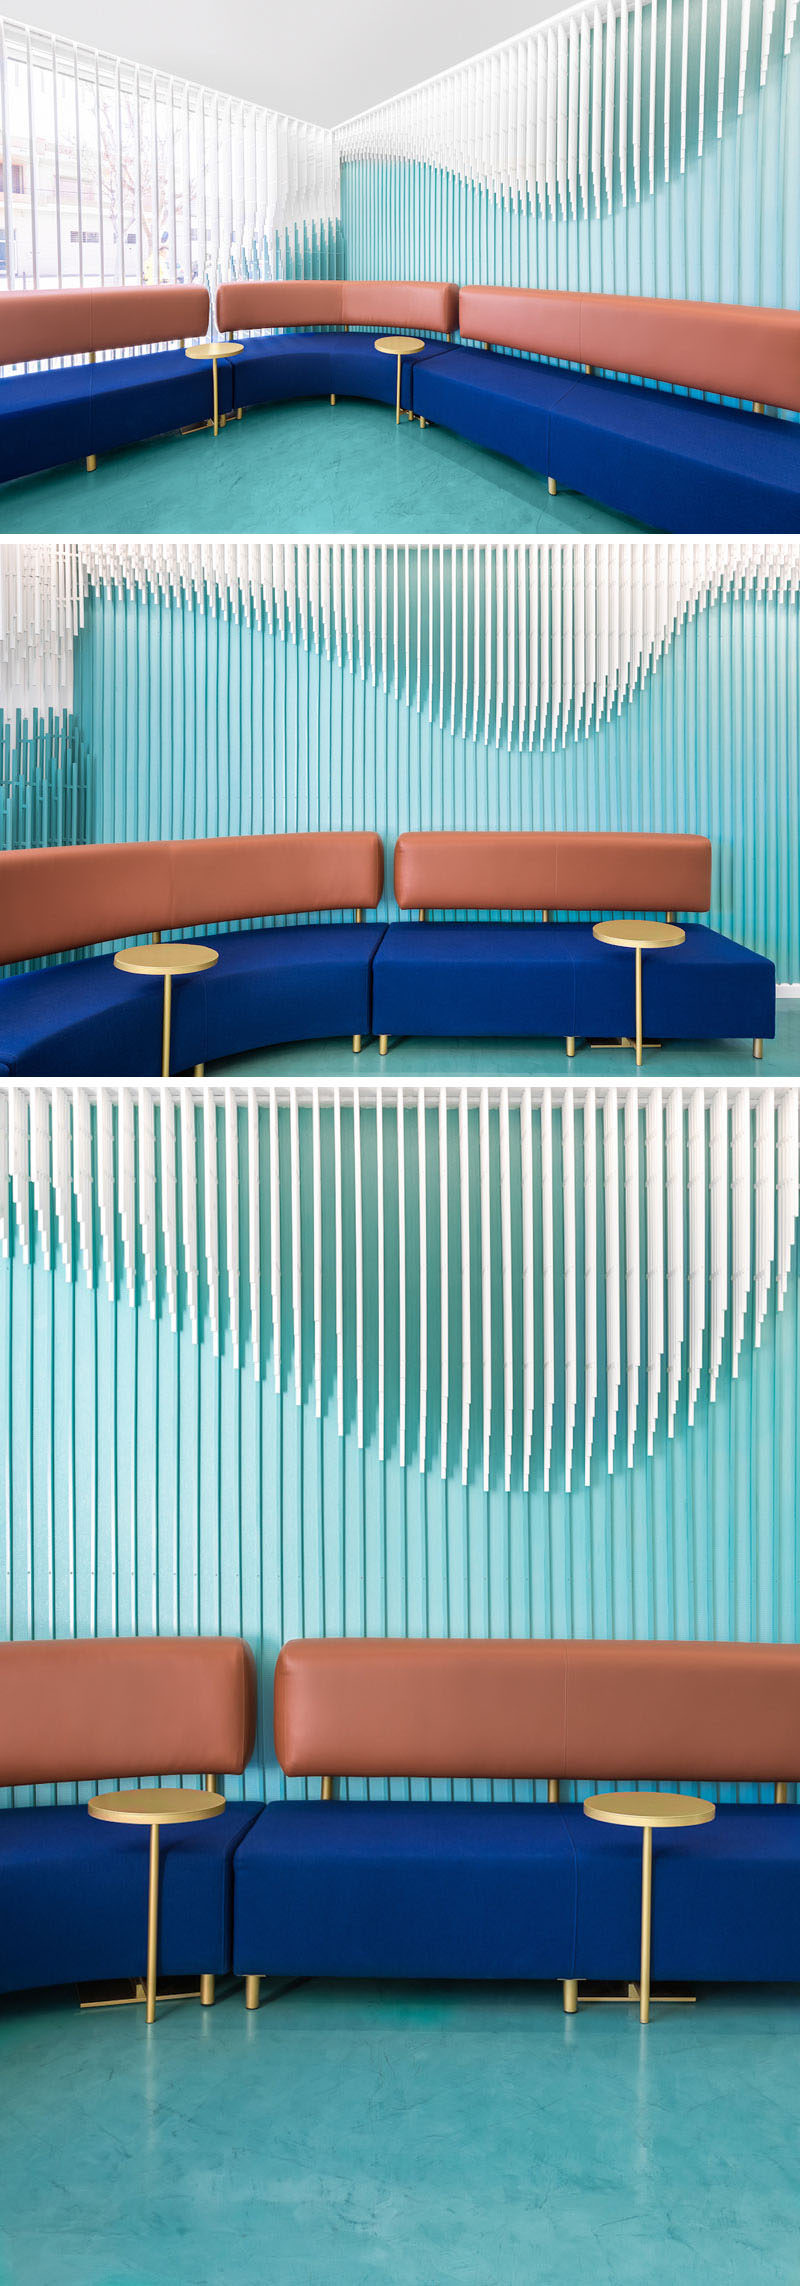 Throughout this modern dental clinic, including the waiting room, there's a sculpture of 2884 wooden strips that hang from the ceiling and overwhelm some of the main walls with the aim to recreate a smile. #WallSculpture #InteriorDesign #WaitingRoom